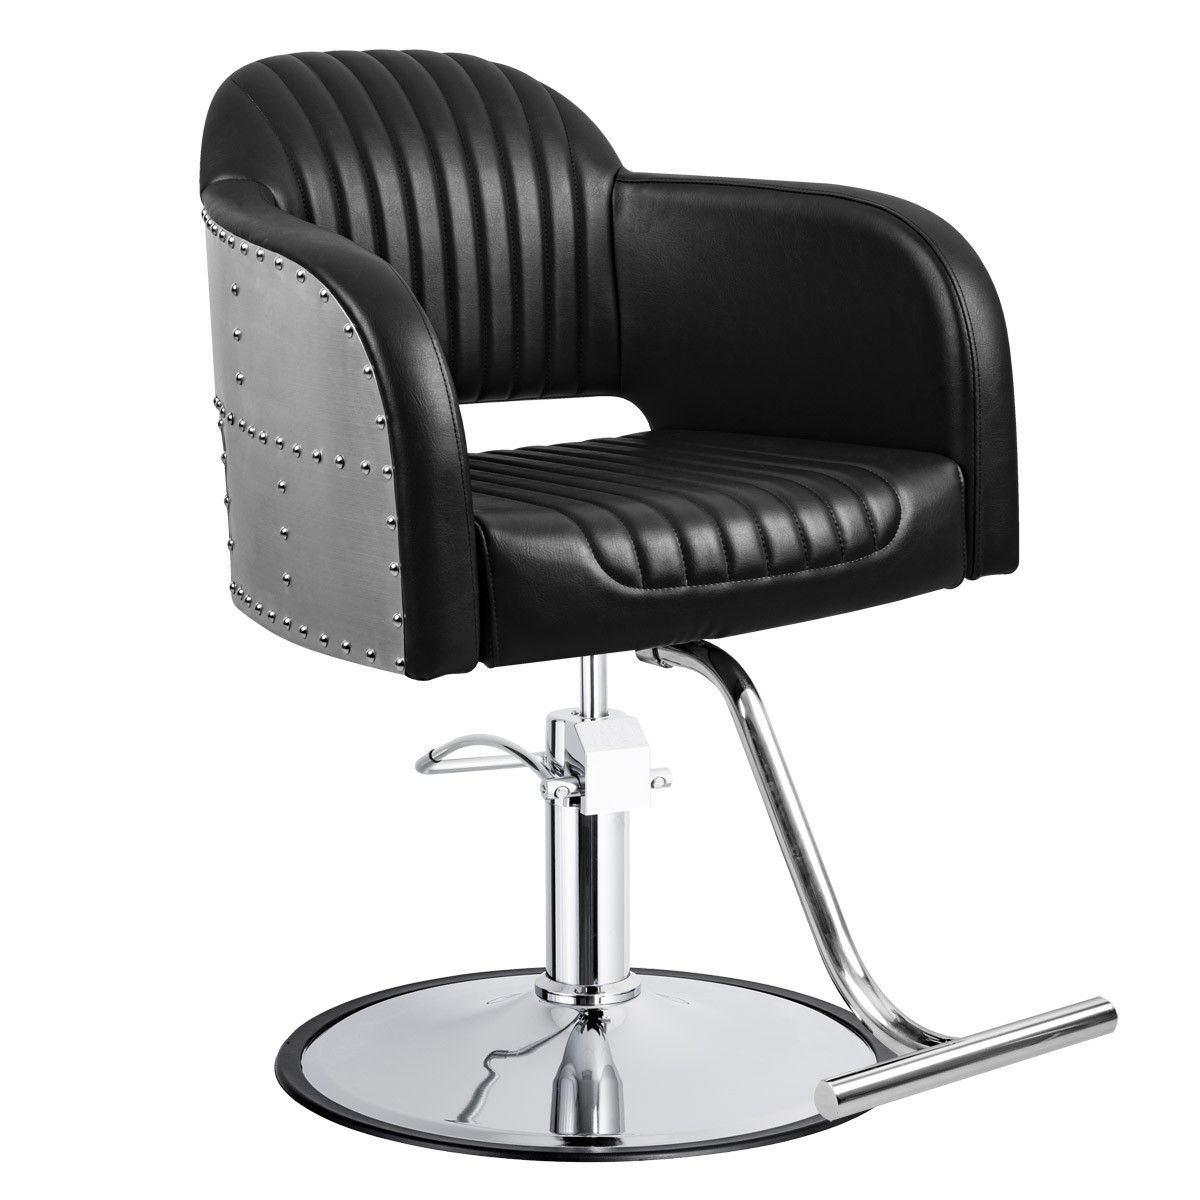 Corsair Styling Chair In Black Chair Style Black Chair